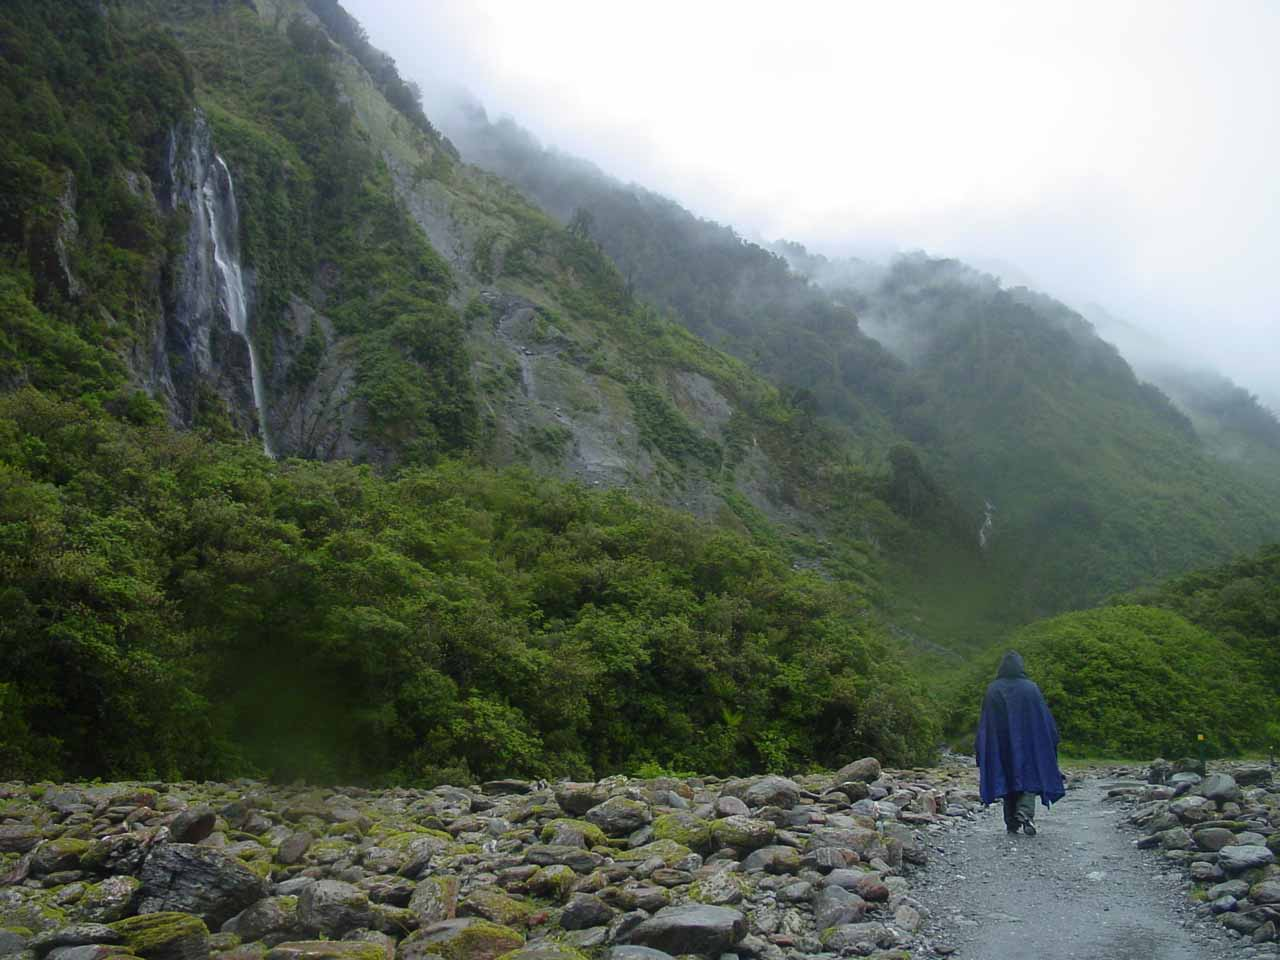 Walking in the rain under rejuvenated waterfalls at the Franz Josef Glacier in New Zealand